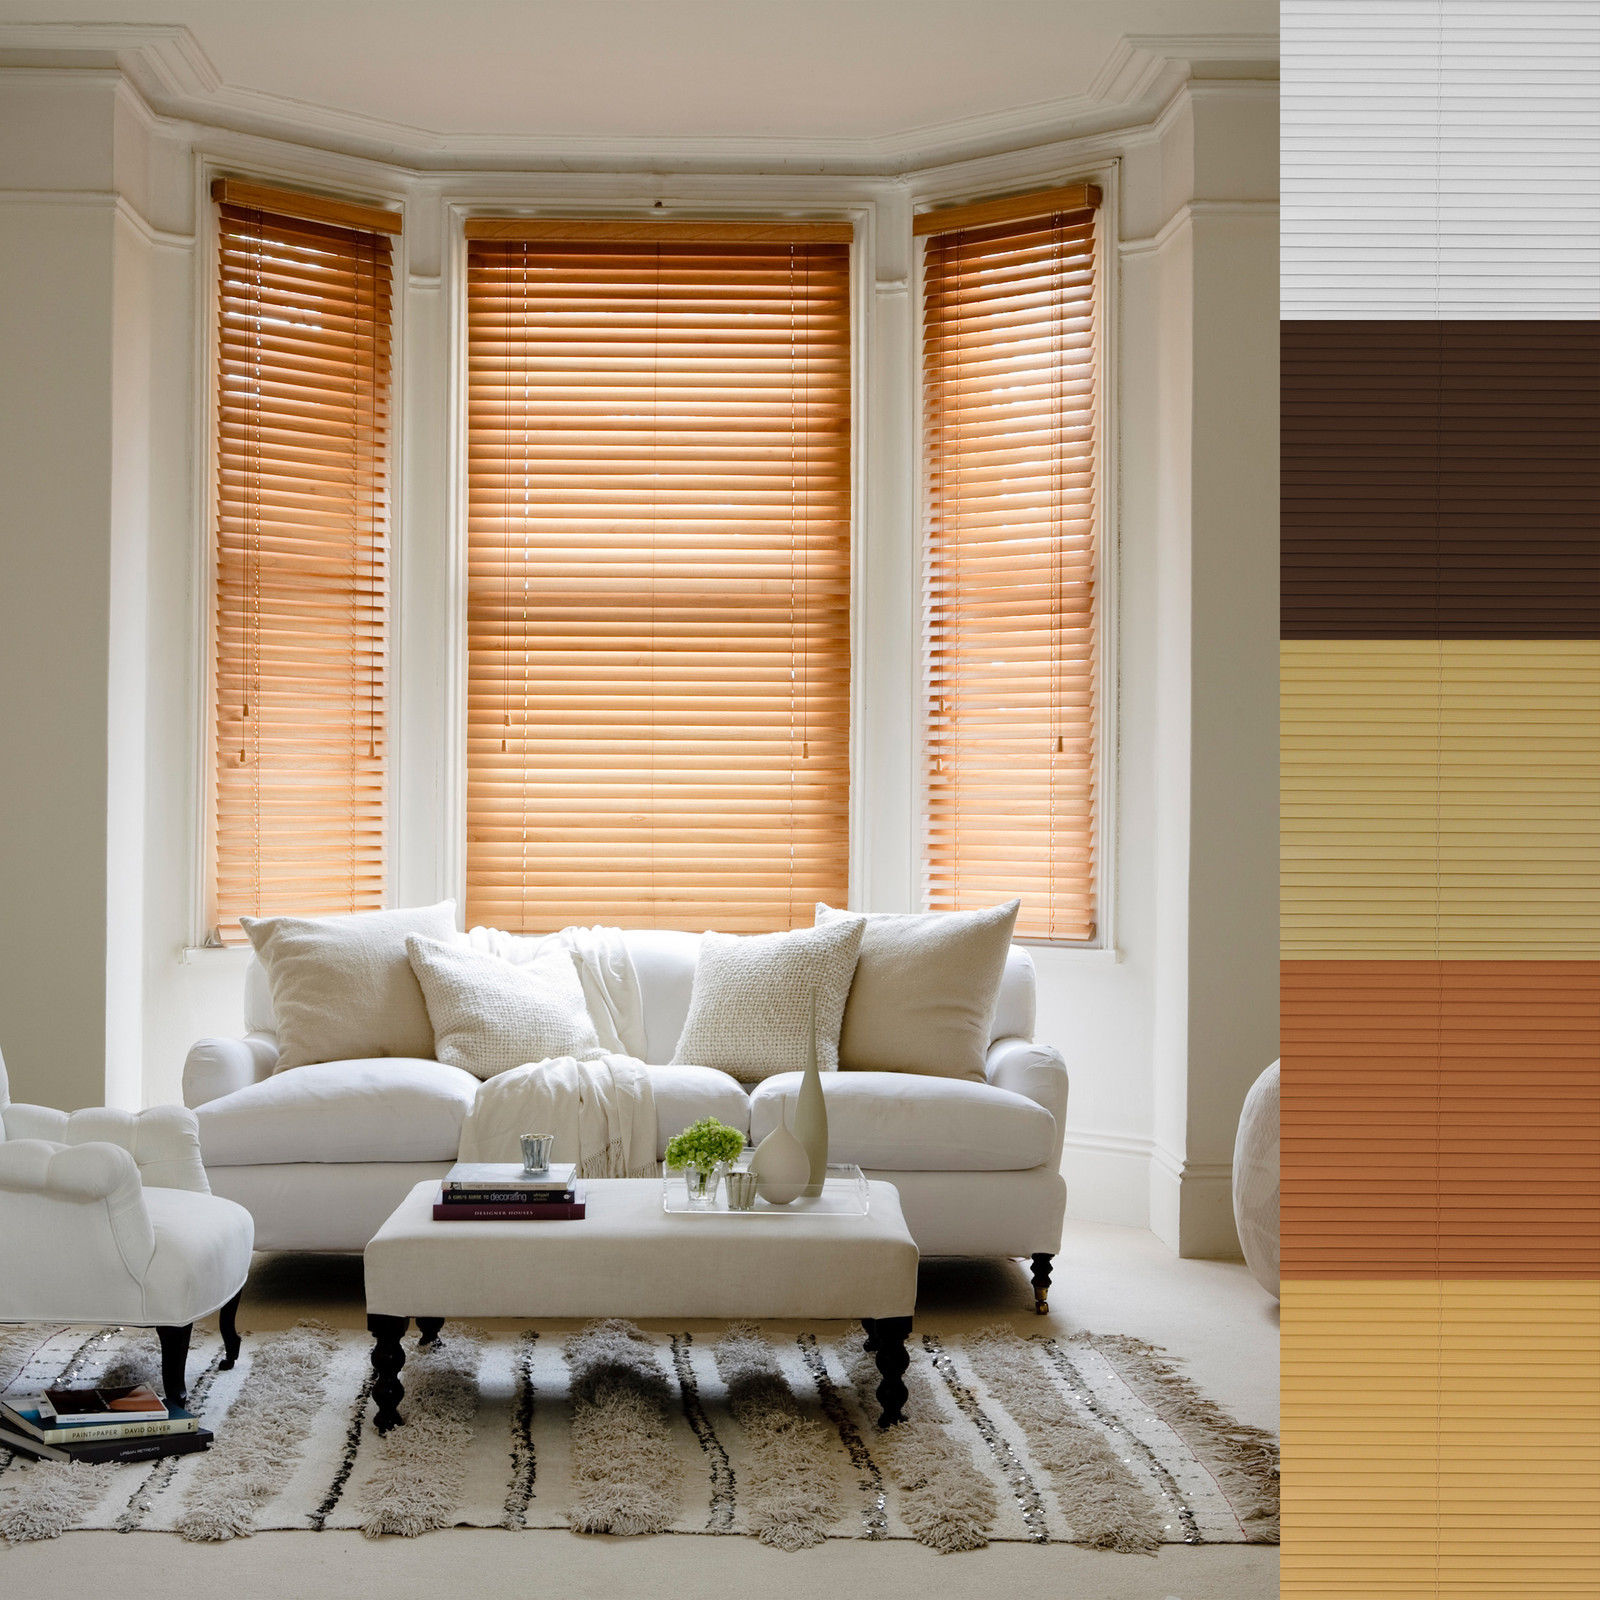 Stylish wooden blinds ideas 10